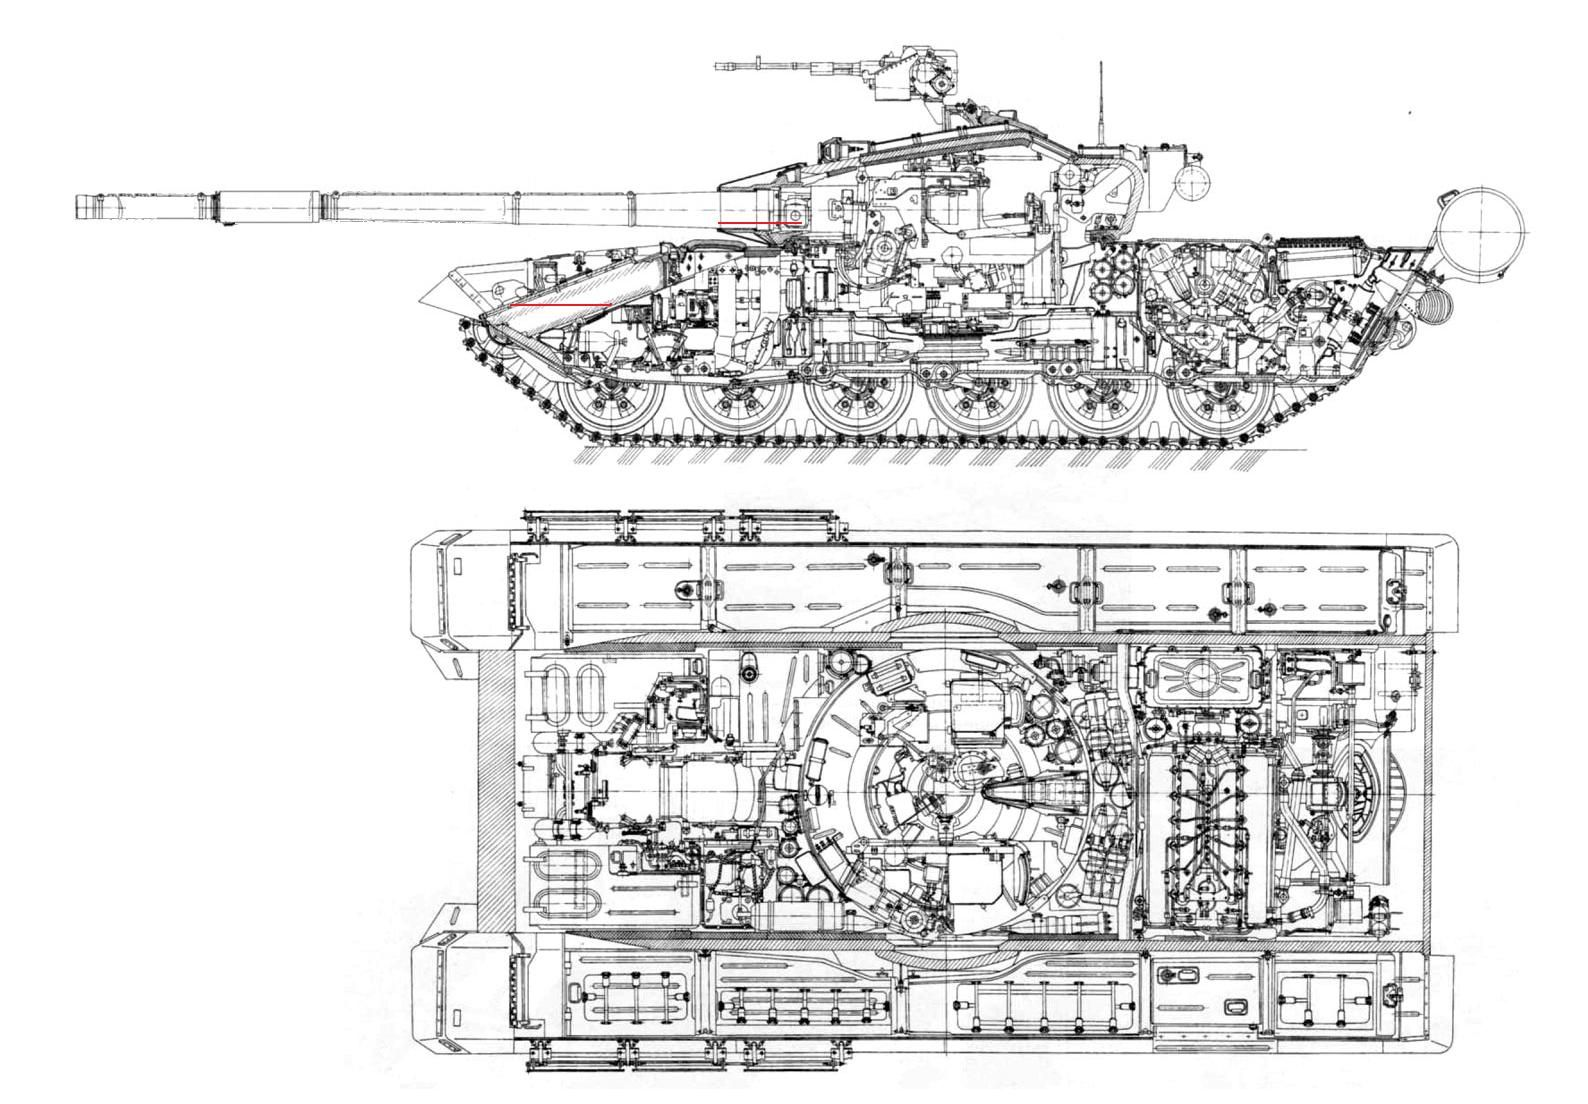 T90armorprotectiong 15881104 pinterest battle t90armorprotectiong 15881104 pinterest battle tank and warfare sciox Image collections